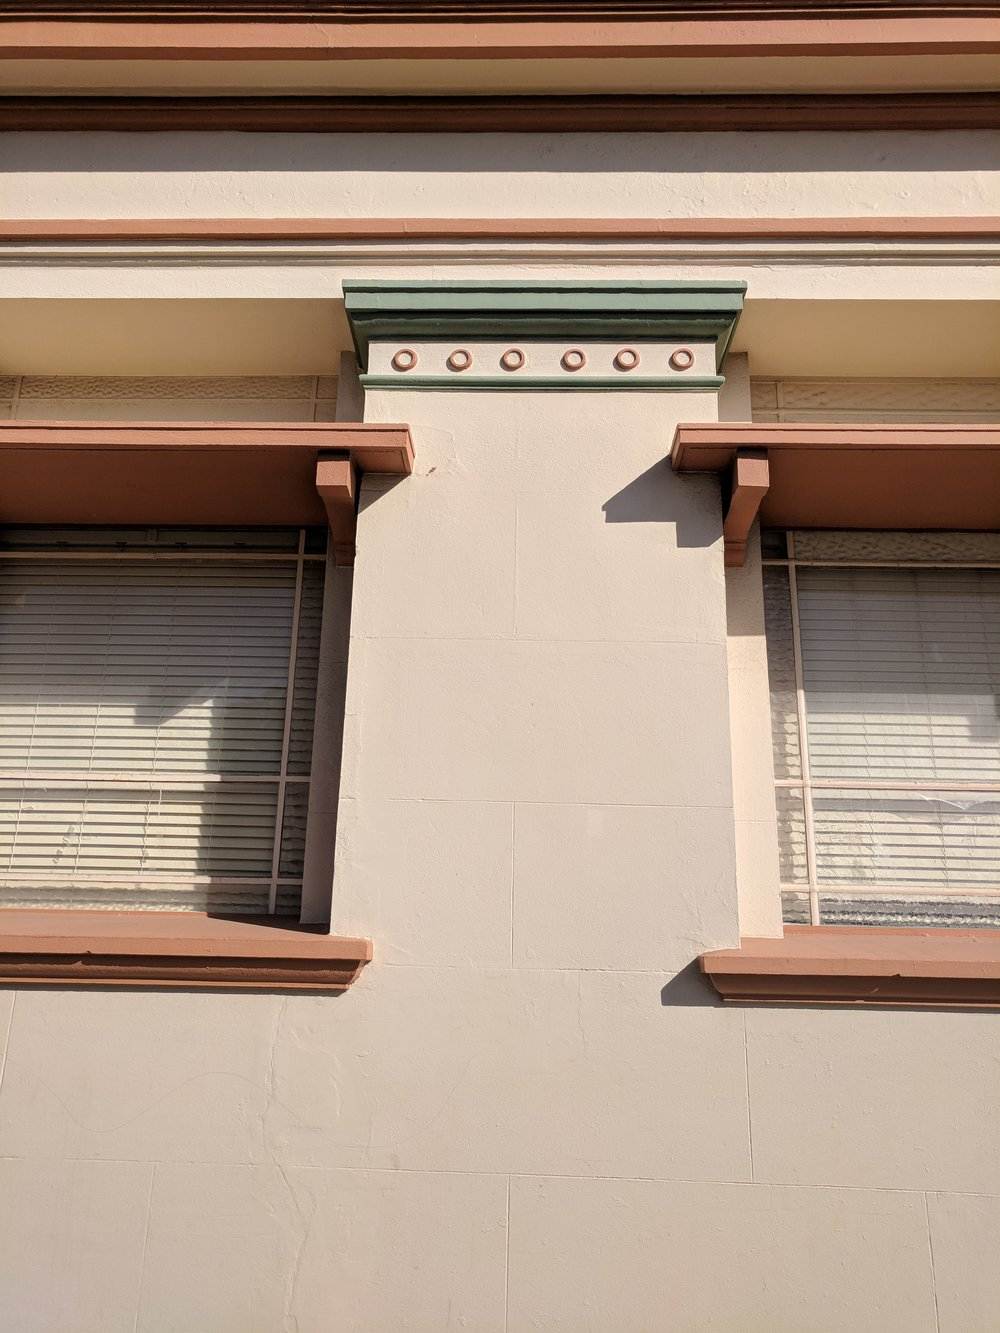 Facade Ornamentation, the old commonwealth bank